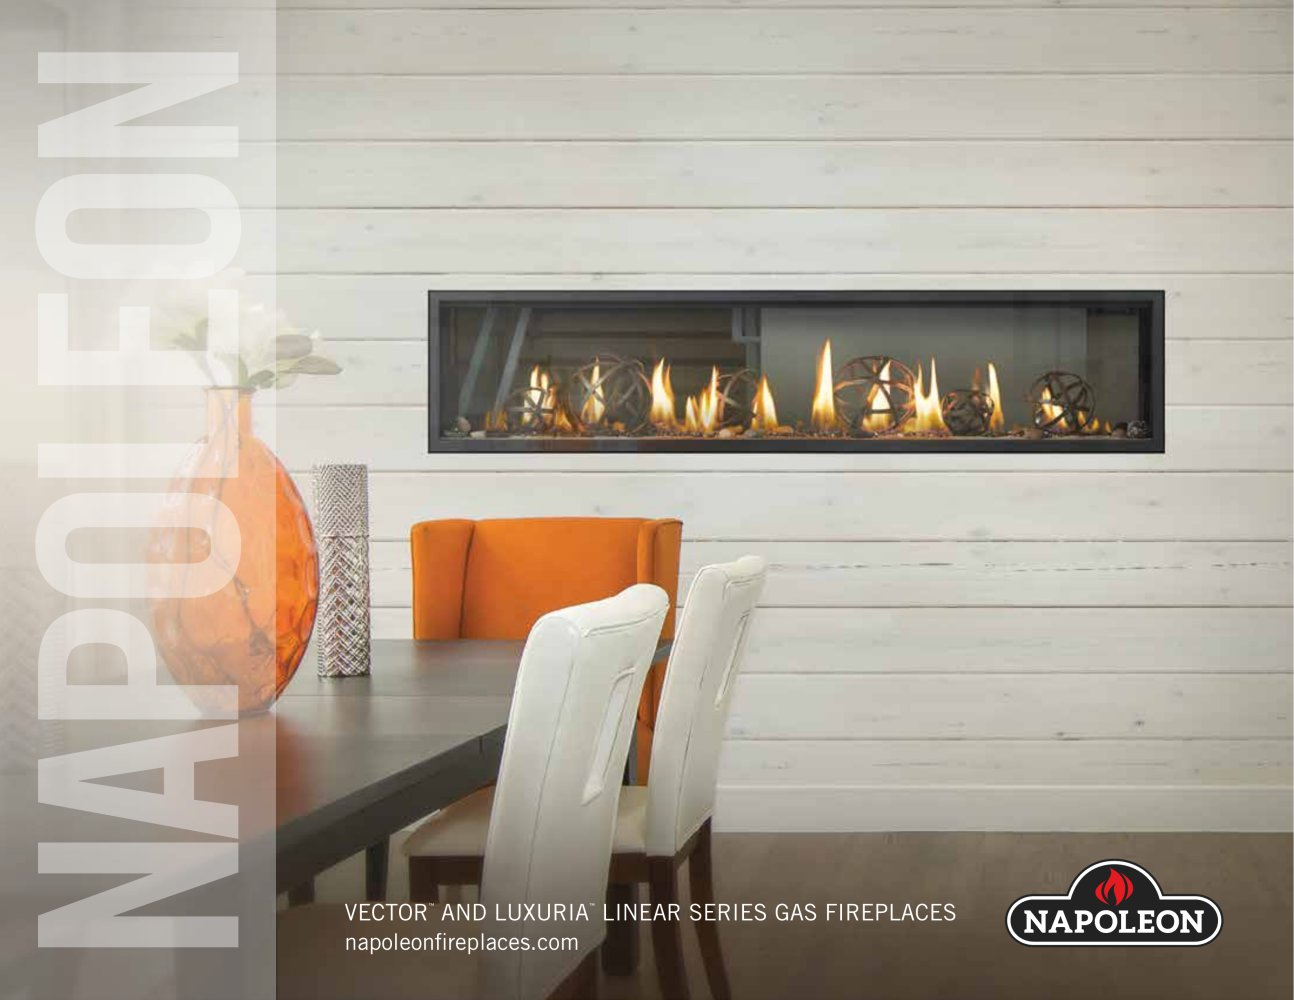 Napoleon Gas Fireplace Canada - Fireplace Ideas